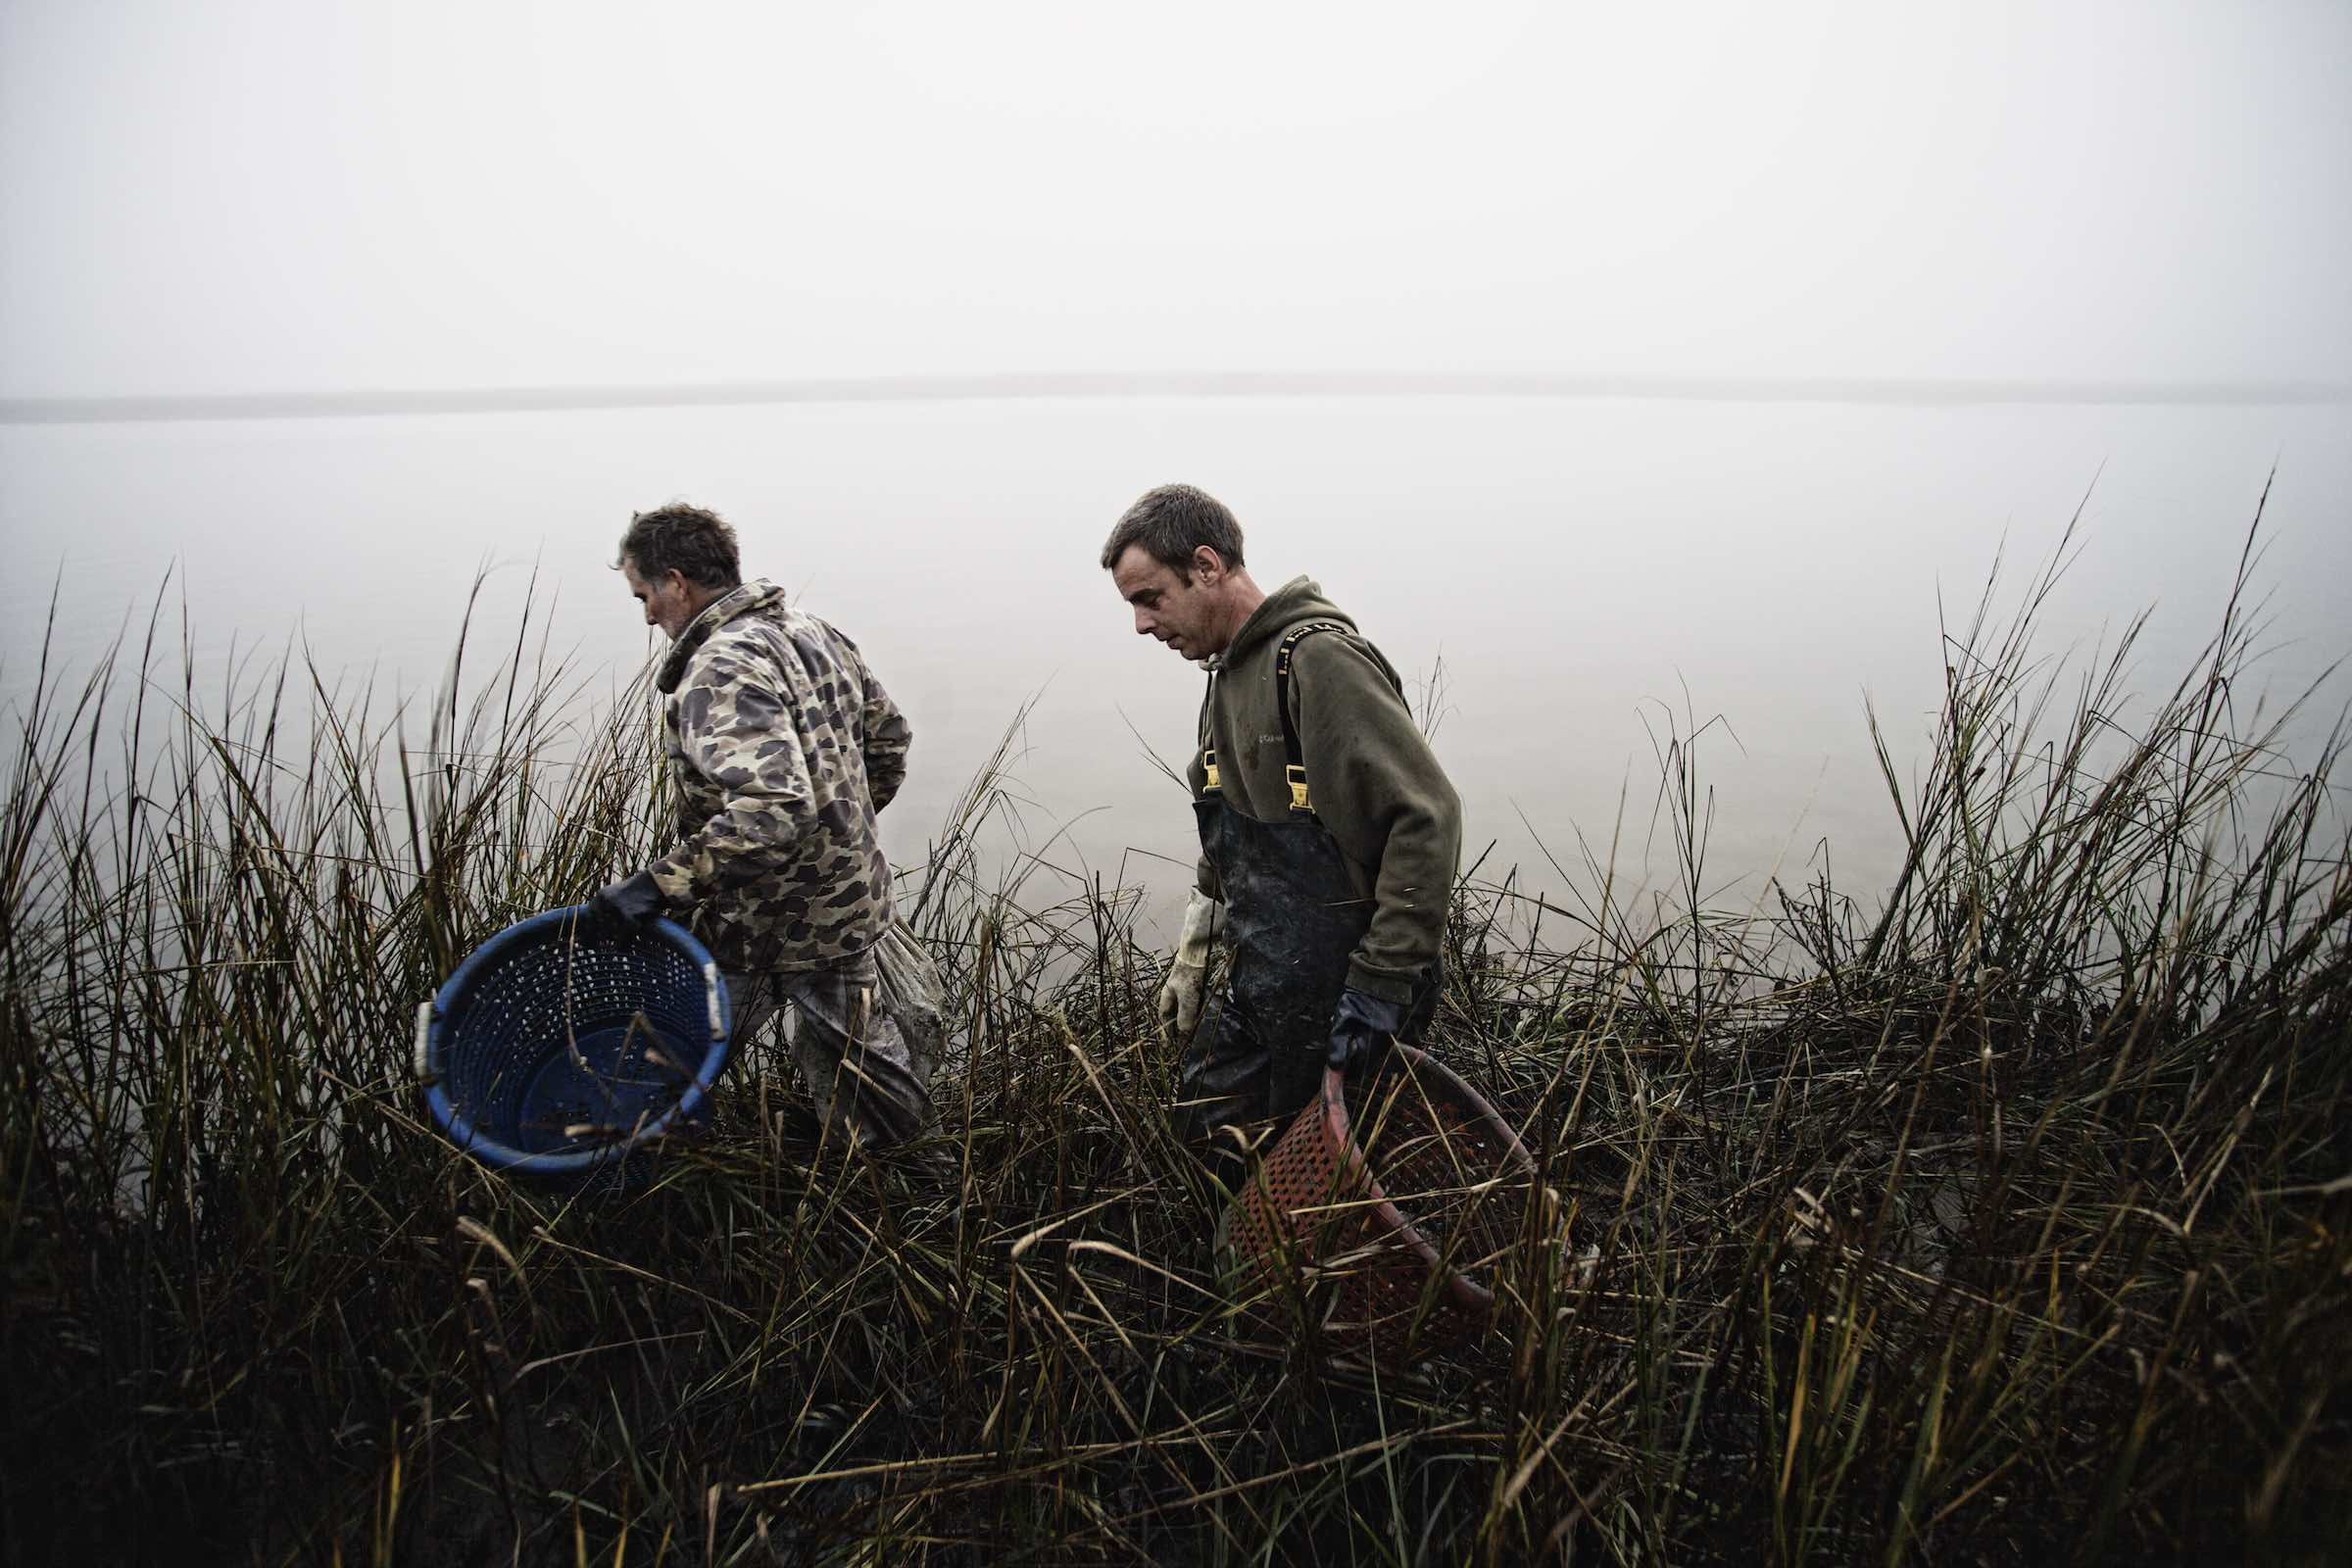 Jody Horton Photography - Fishermen carrying empty baskets through tall grass.